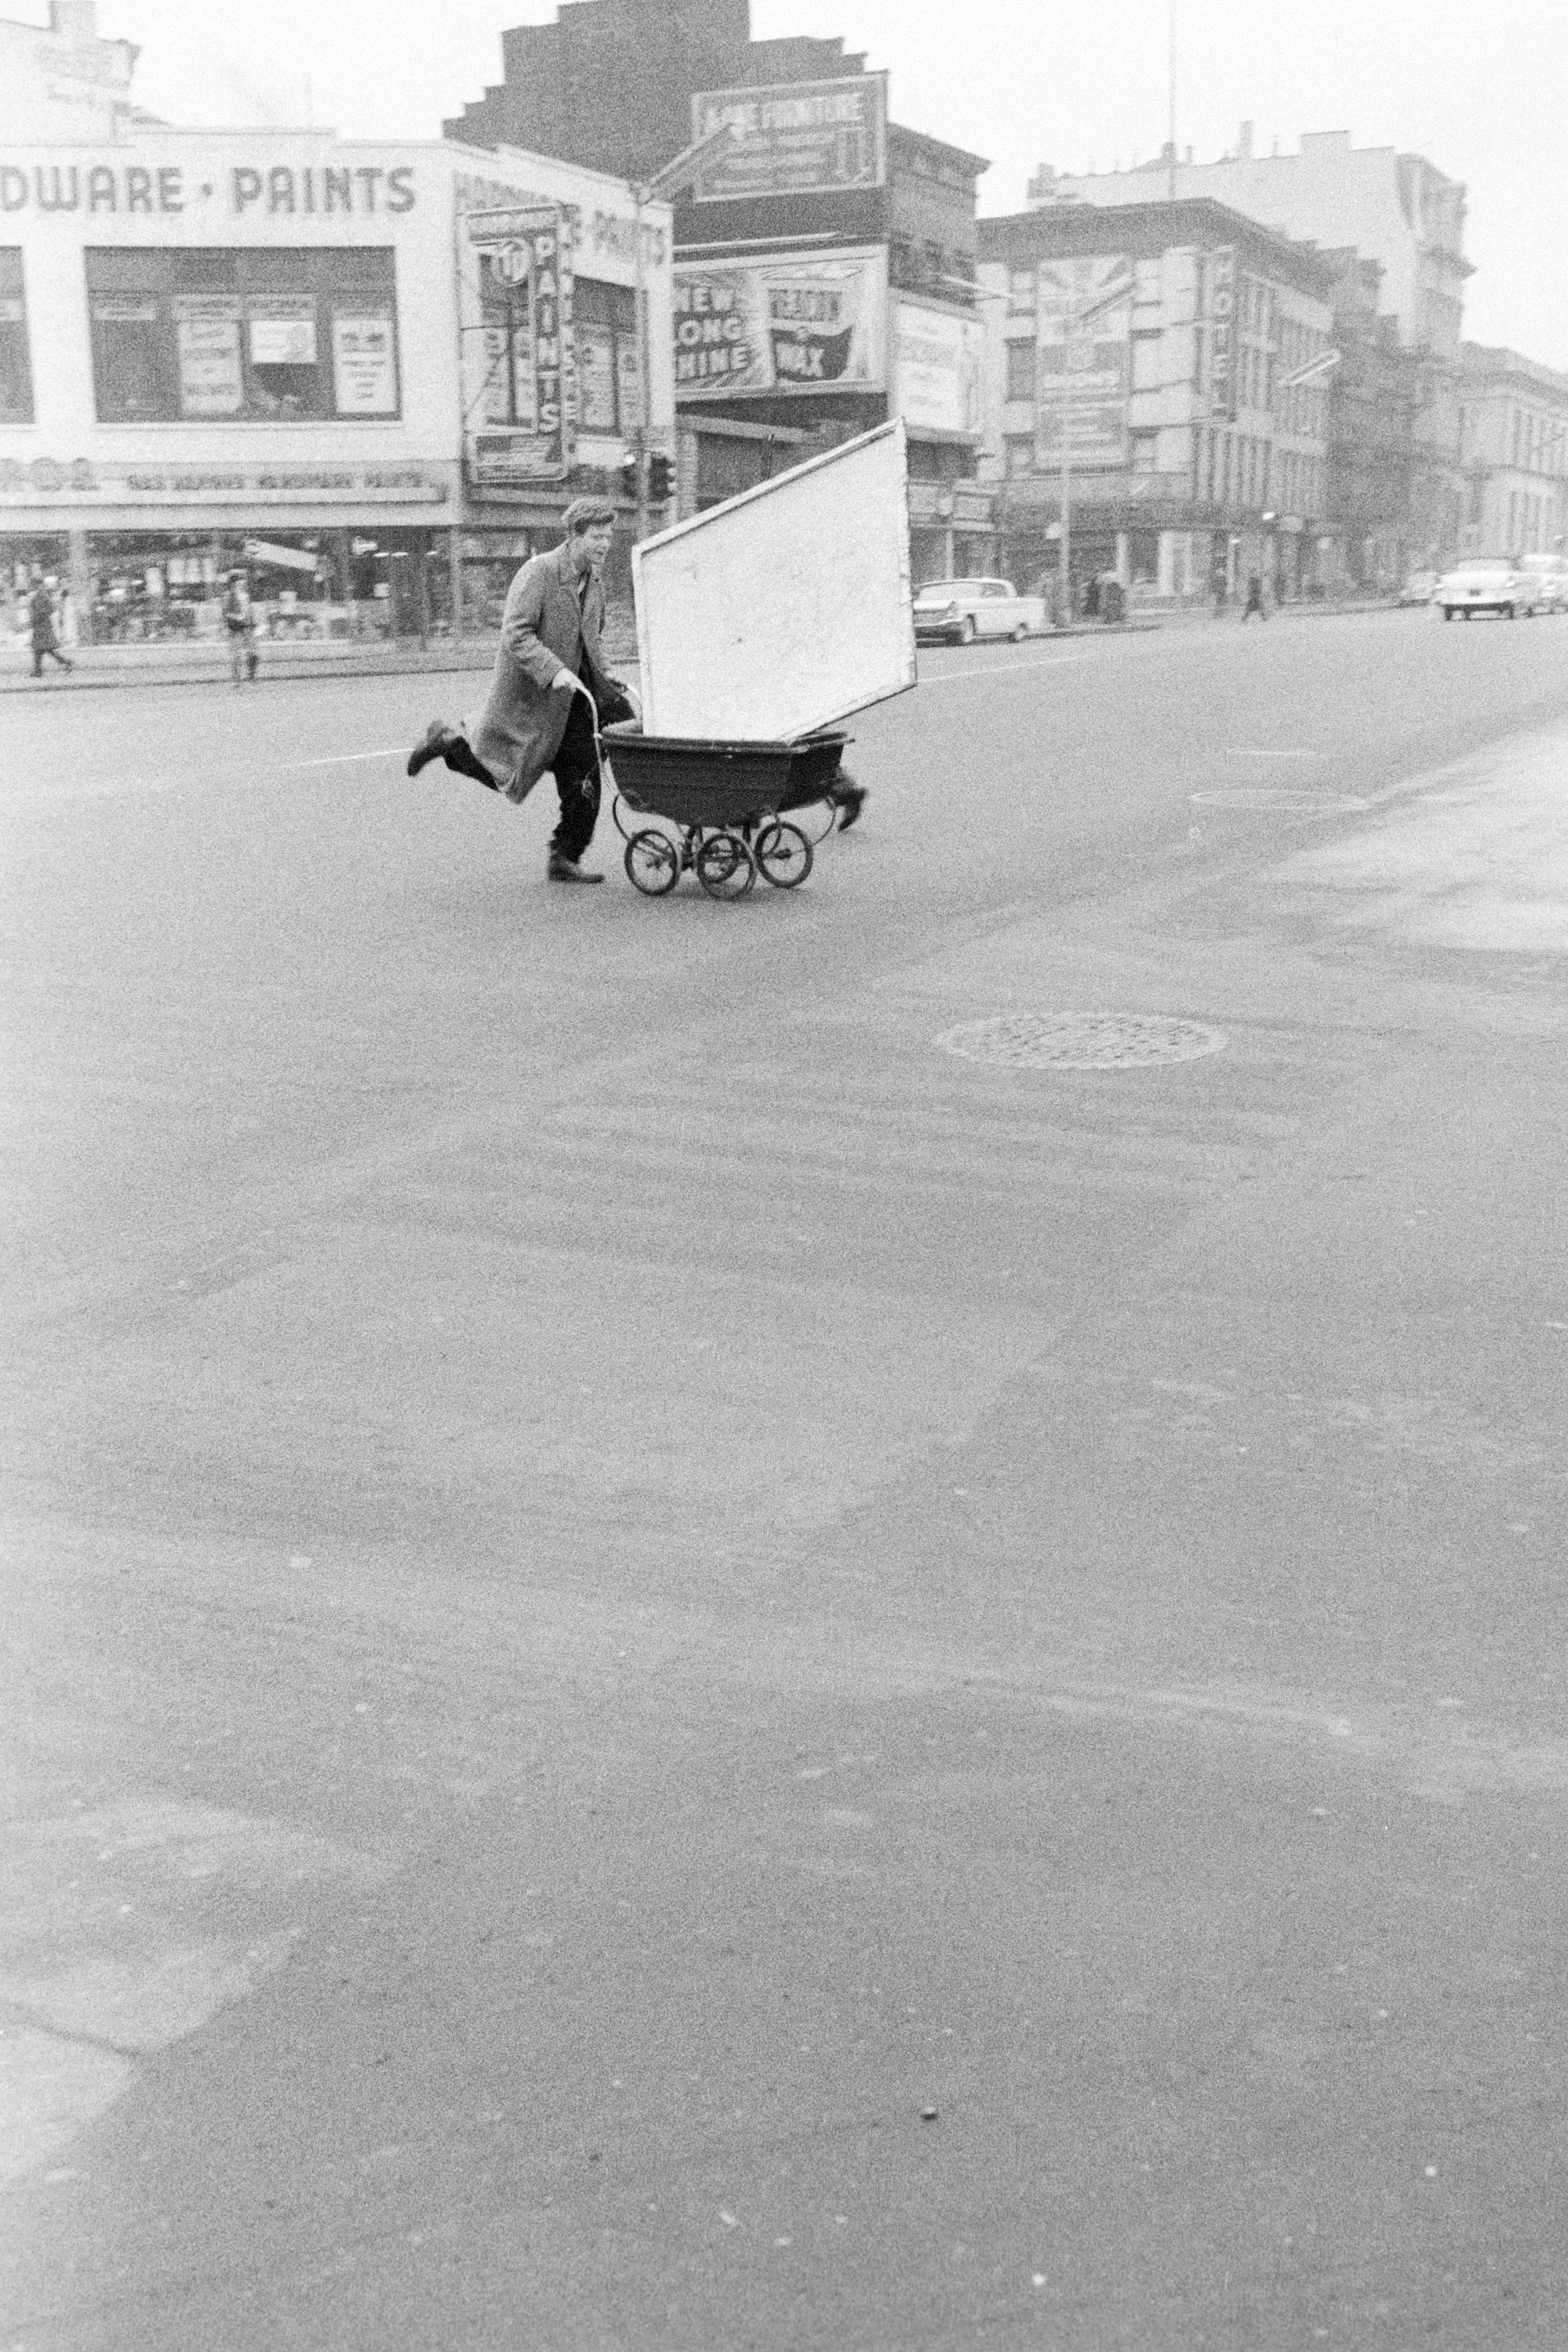 Red Grooms transporting artwork across the street to Reuben Gallery, 1960